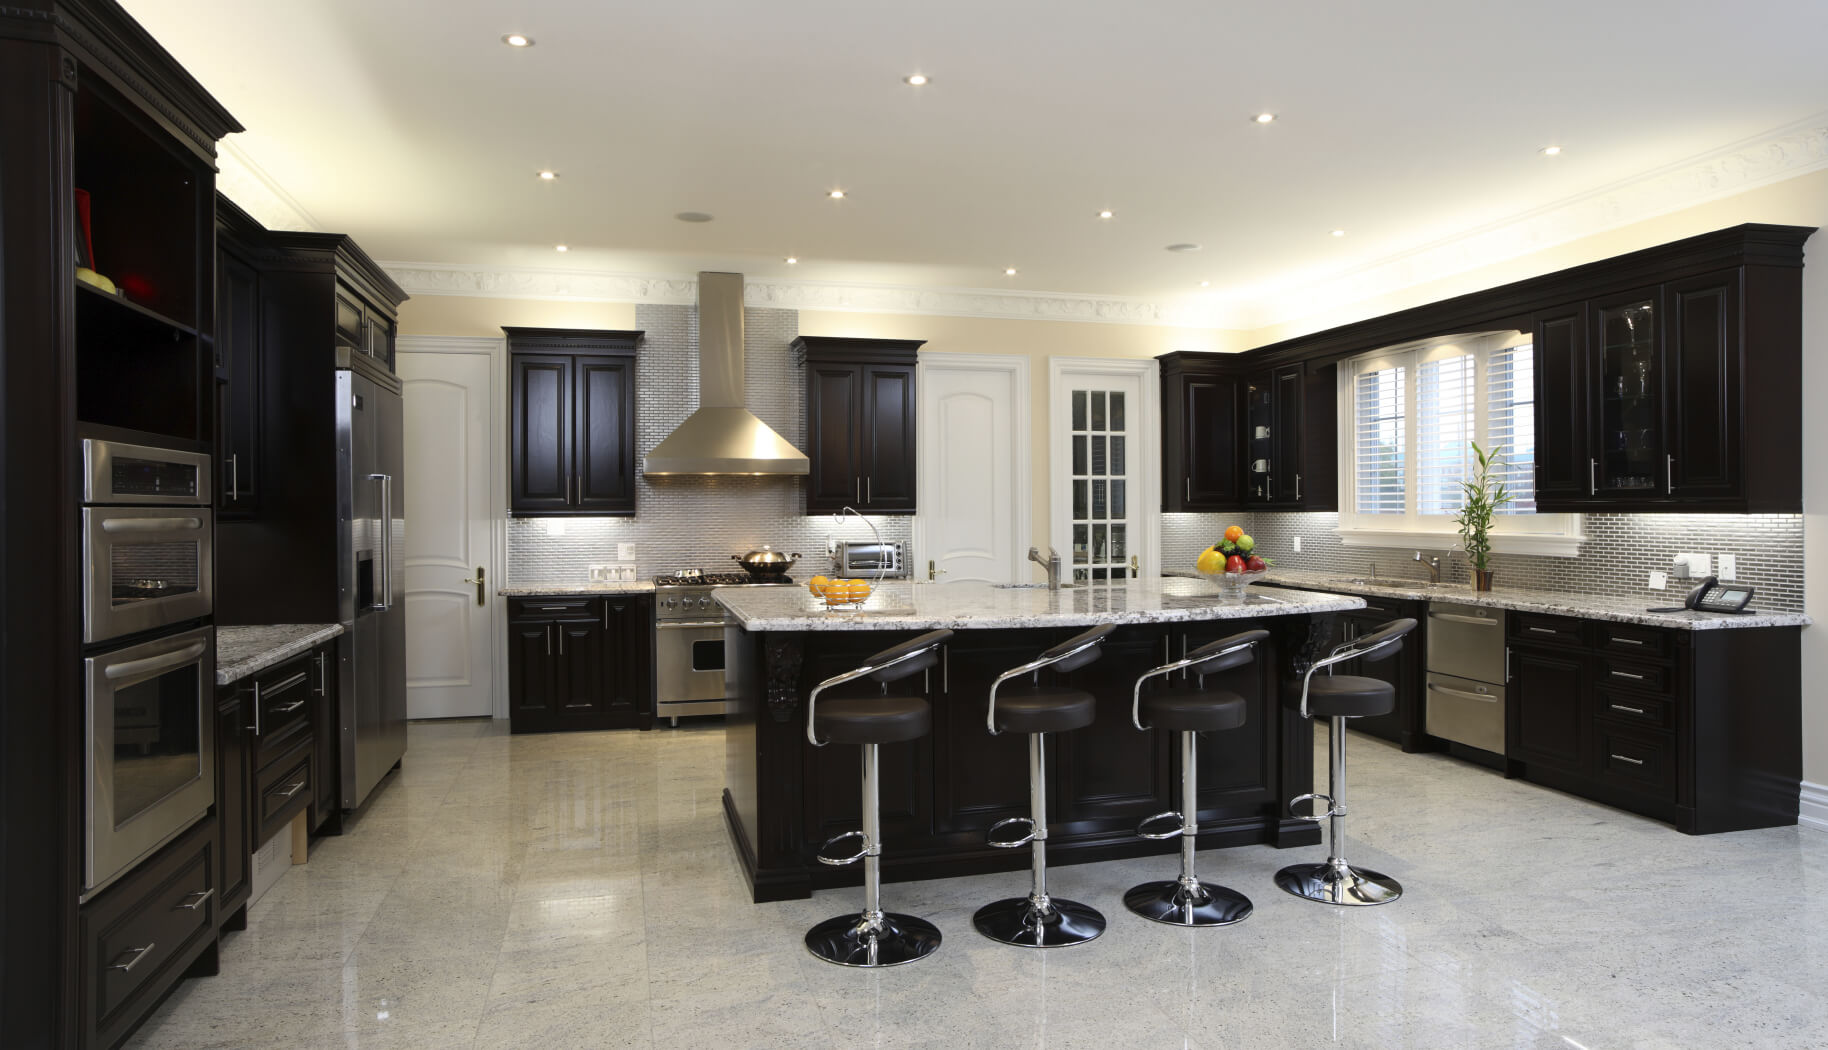 Spacious Modern Kitchen With Dark Cabinetry, Breakfast Bar, 4 Modern Diner  Style Stools And